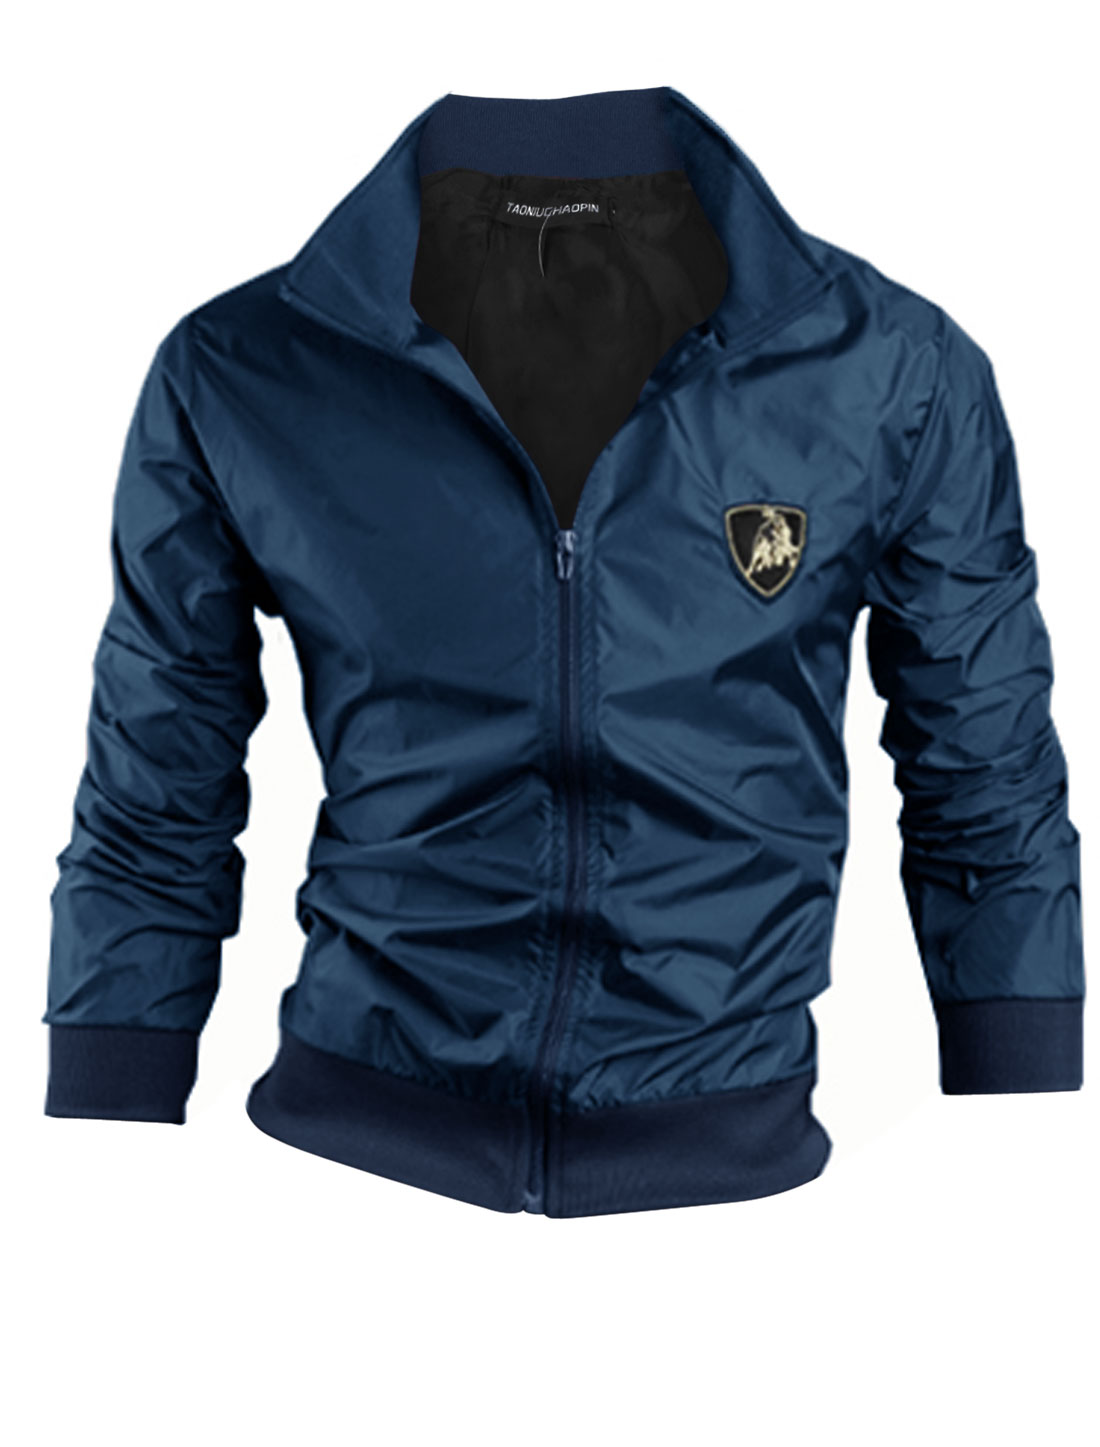 Convertible Collar Long Sleeves Casual Windbreaker for Men Navy Blue M